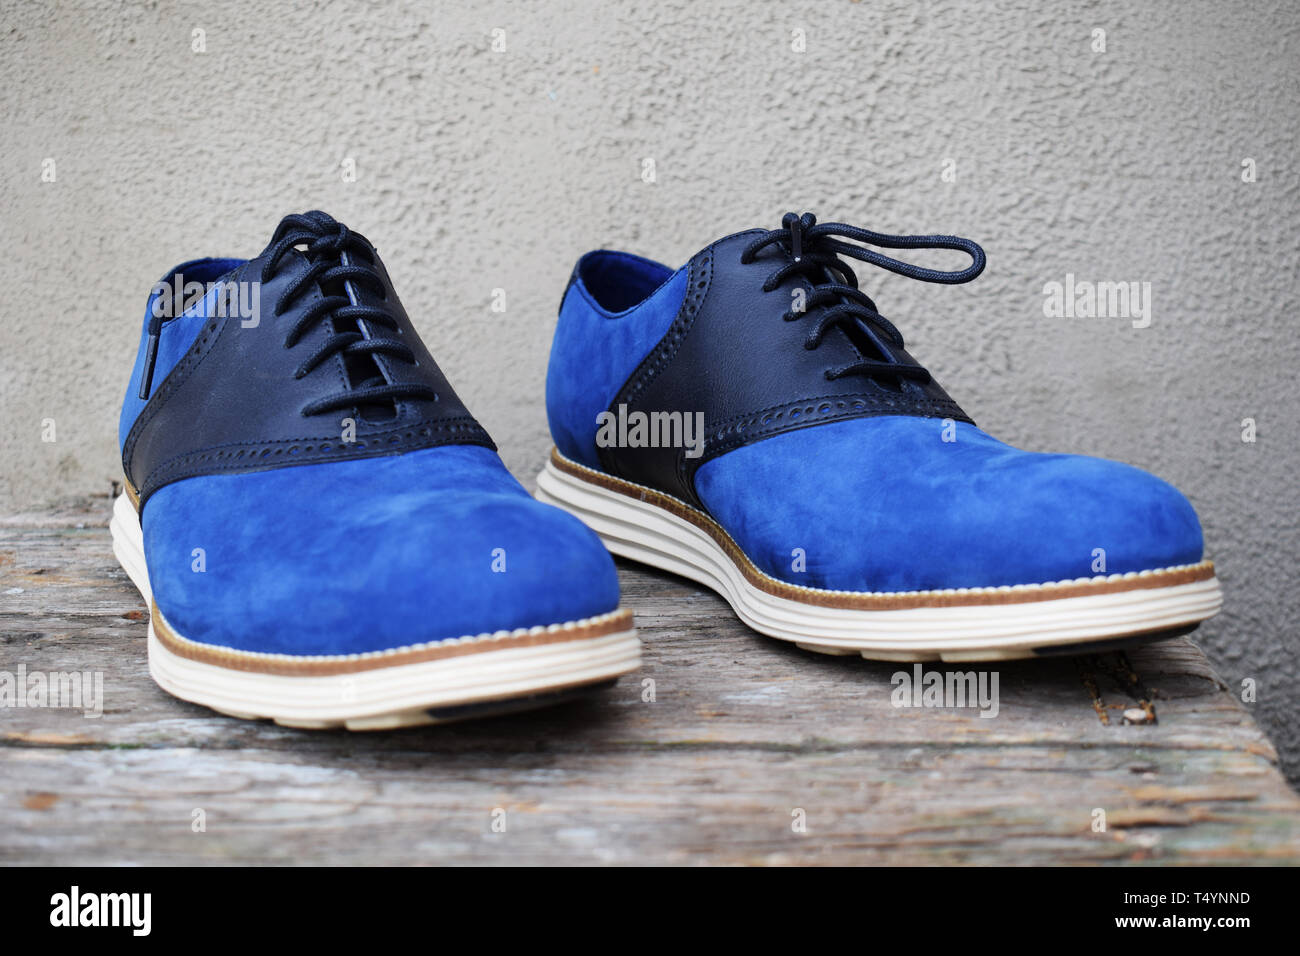 Dark blue sneakers with a white sole on